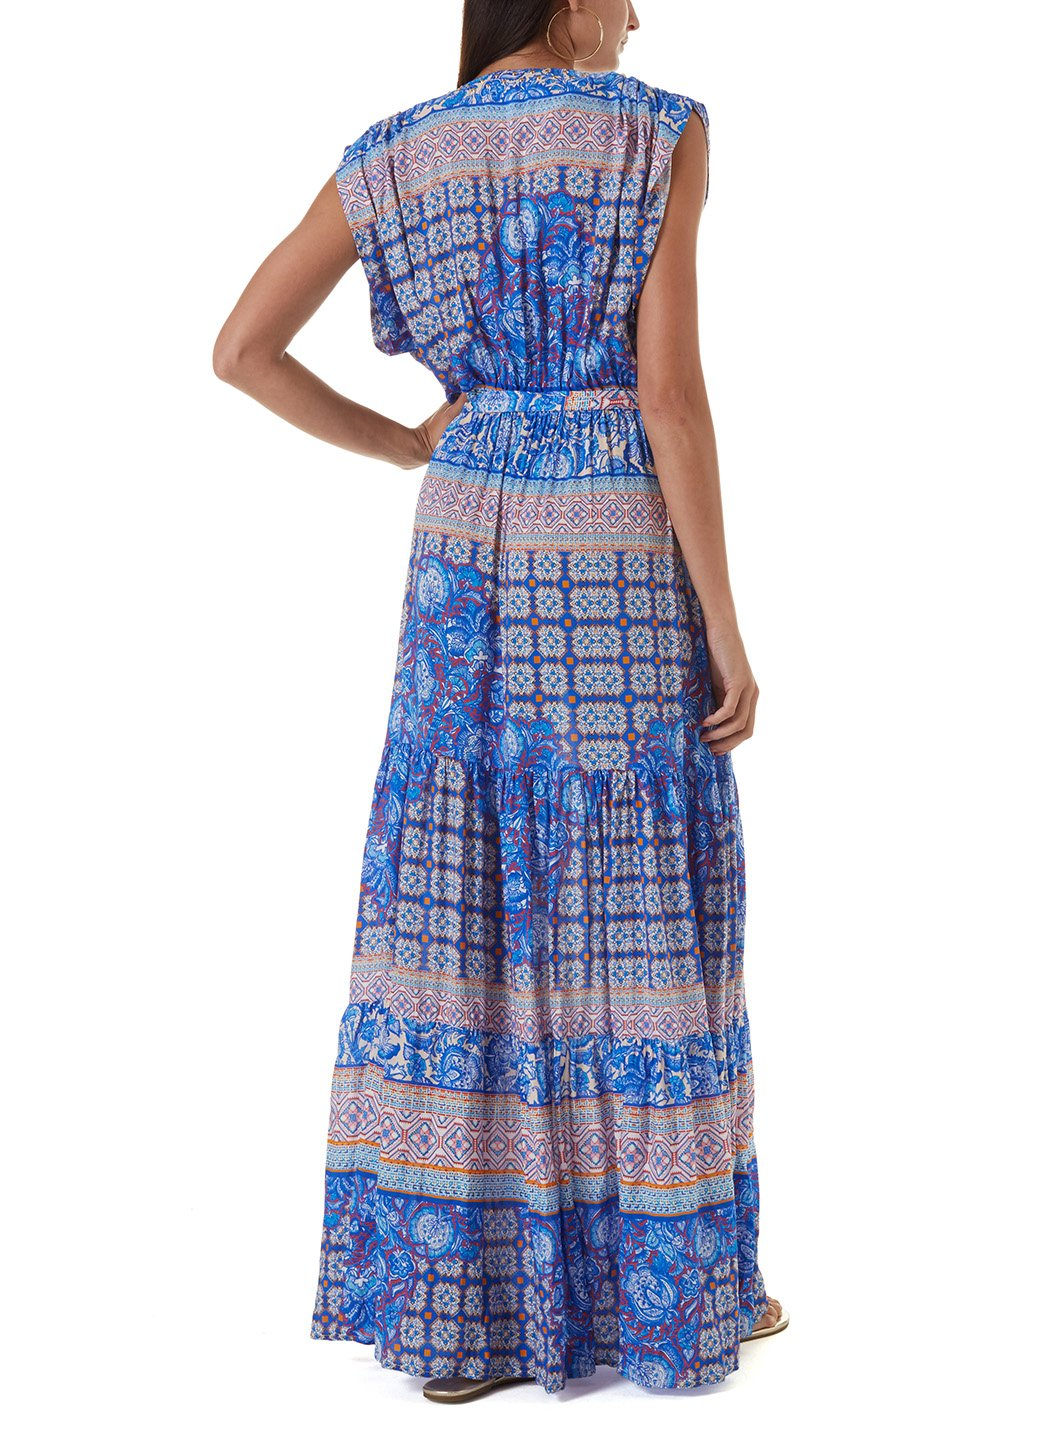 aria bohemian long dress